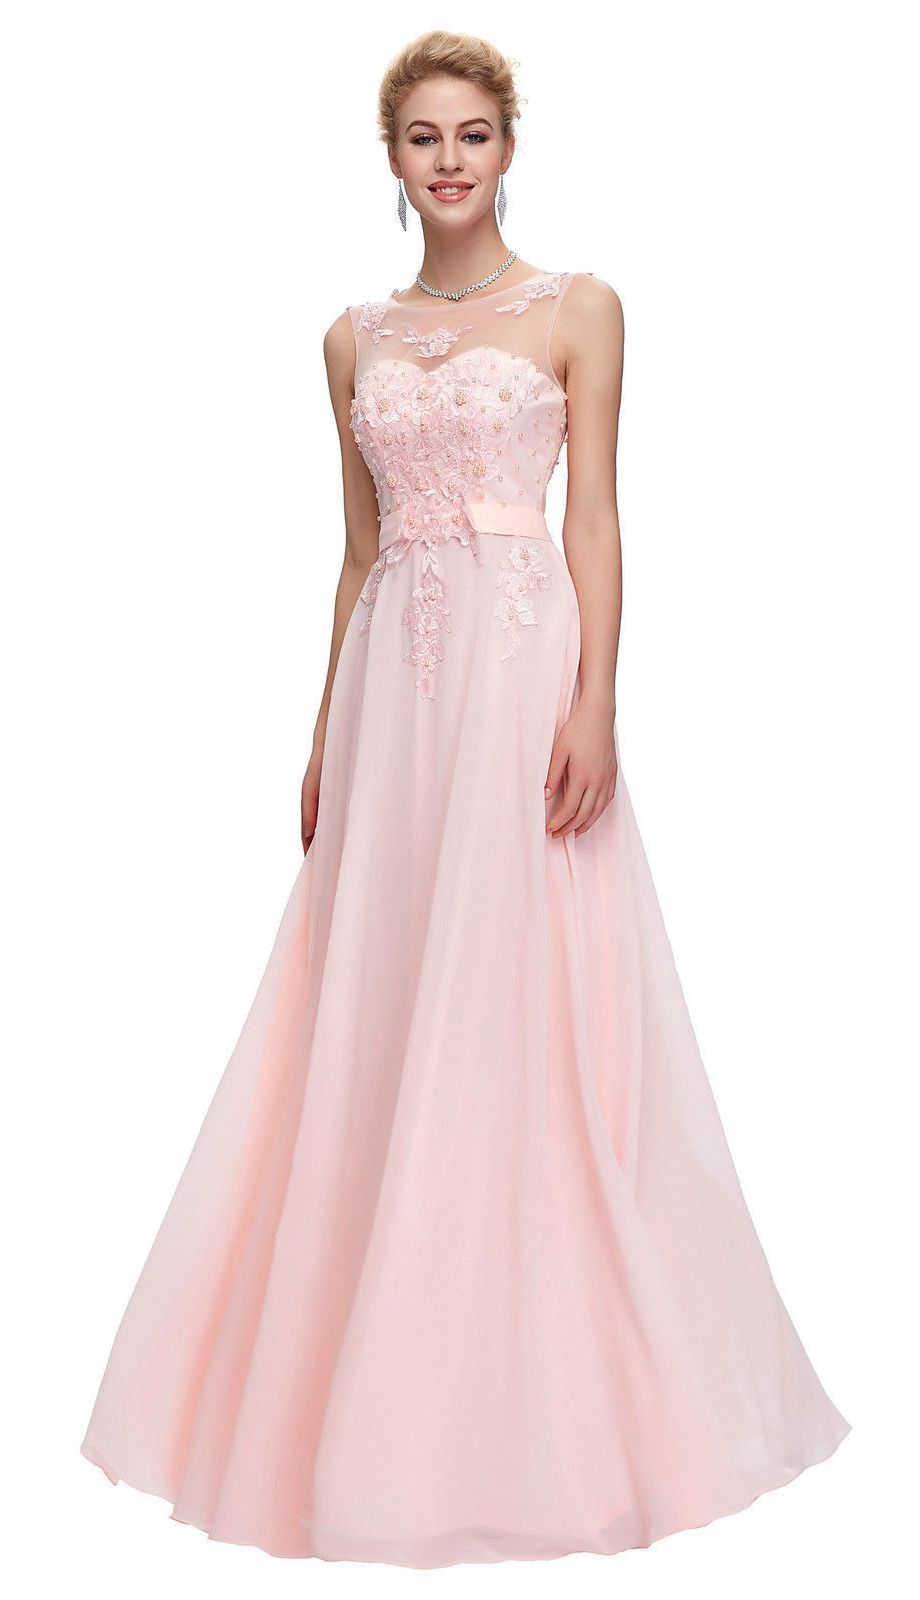 Adele pale light pink embellished lace chiffon long evening bridesmaid prom dress loulous bridal boutique ltd uk